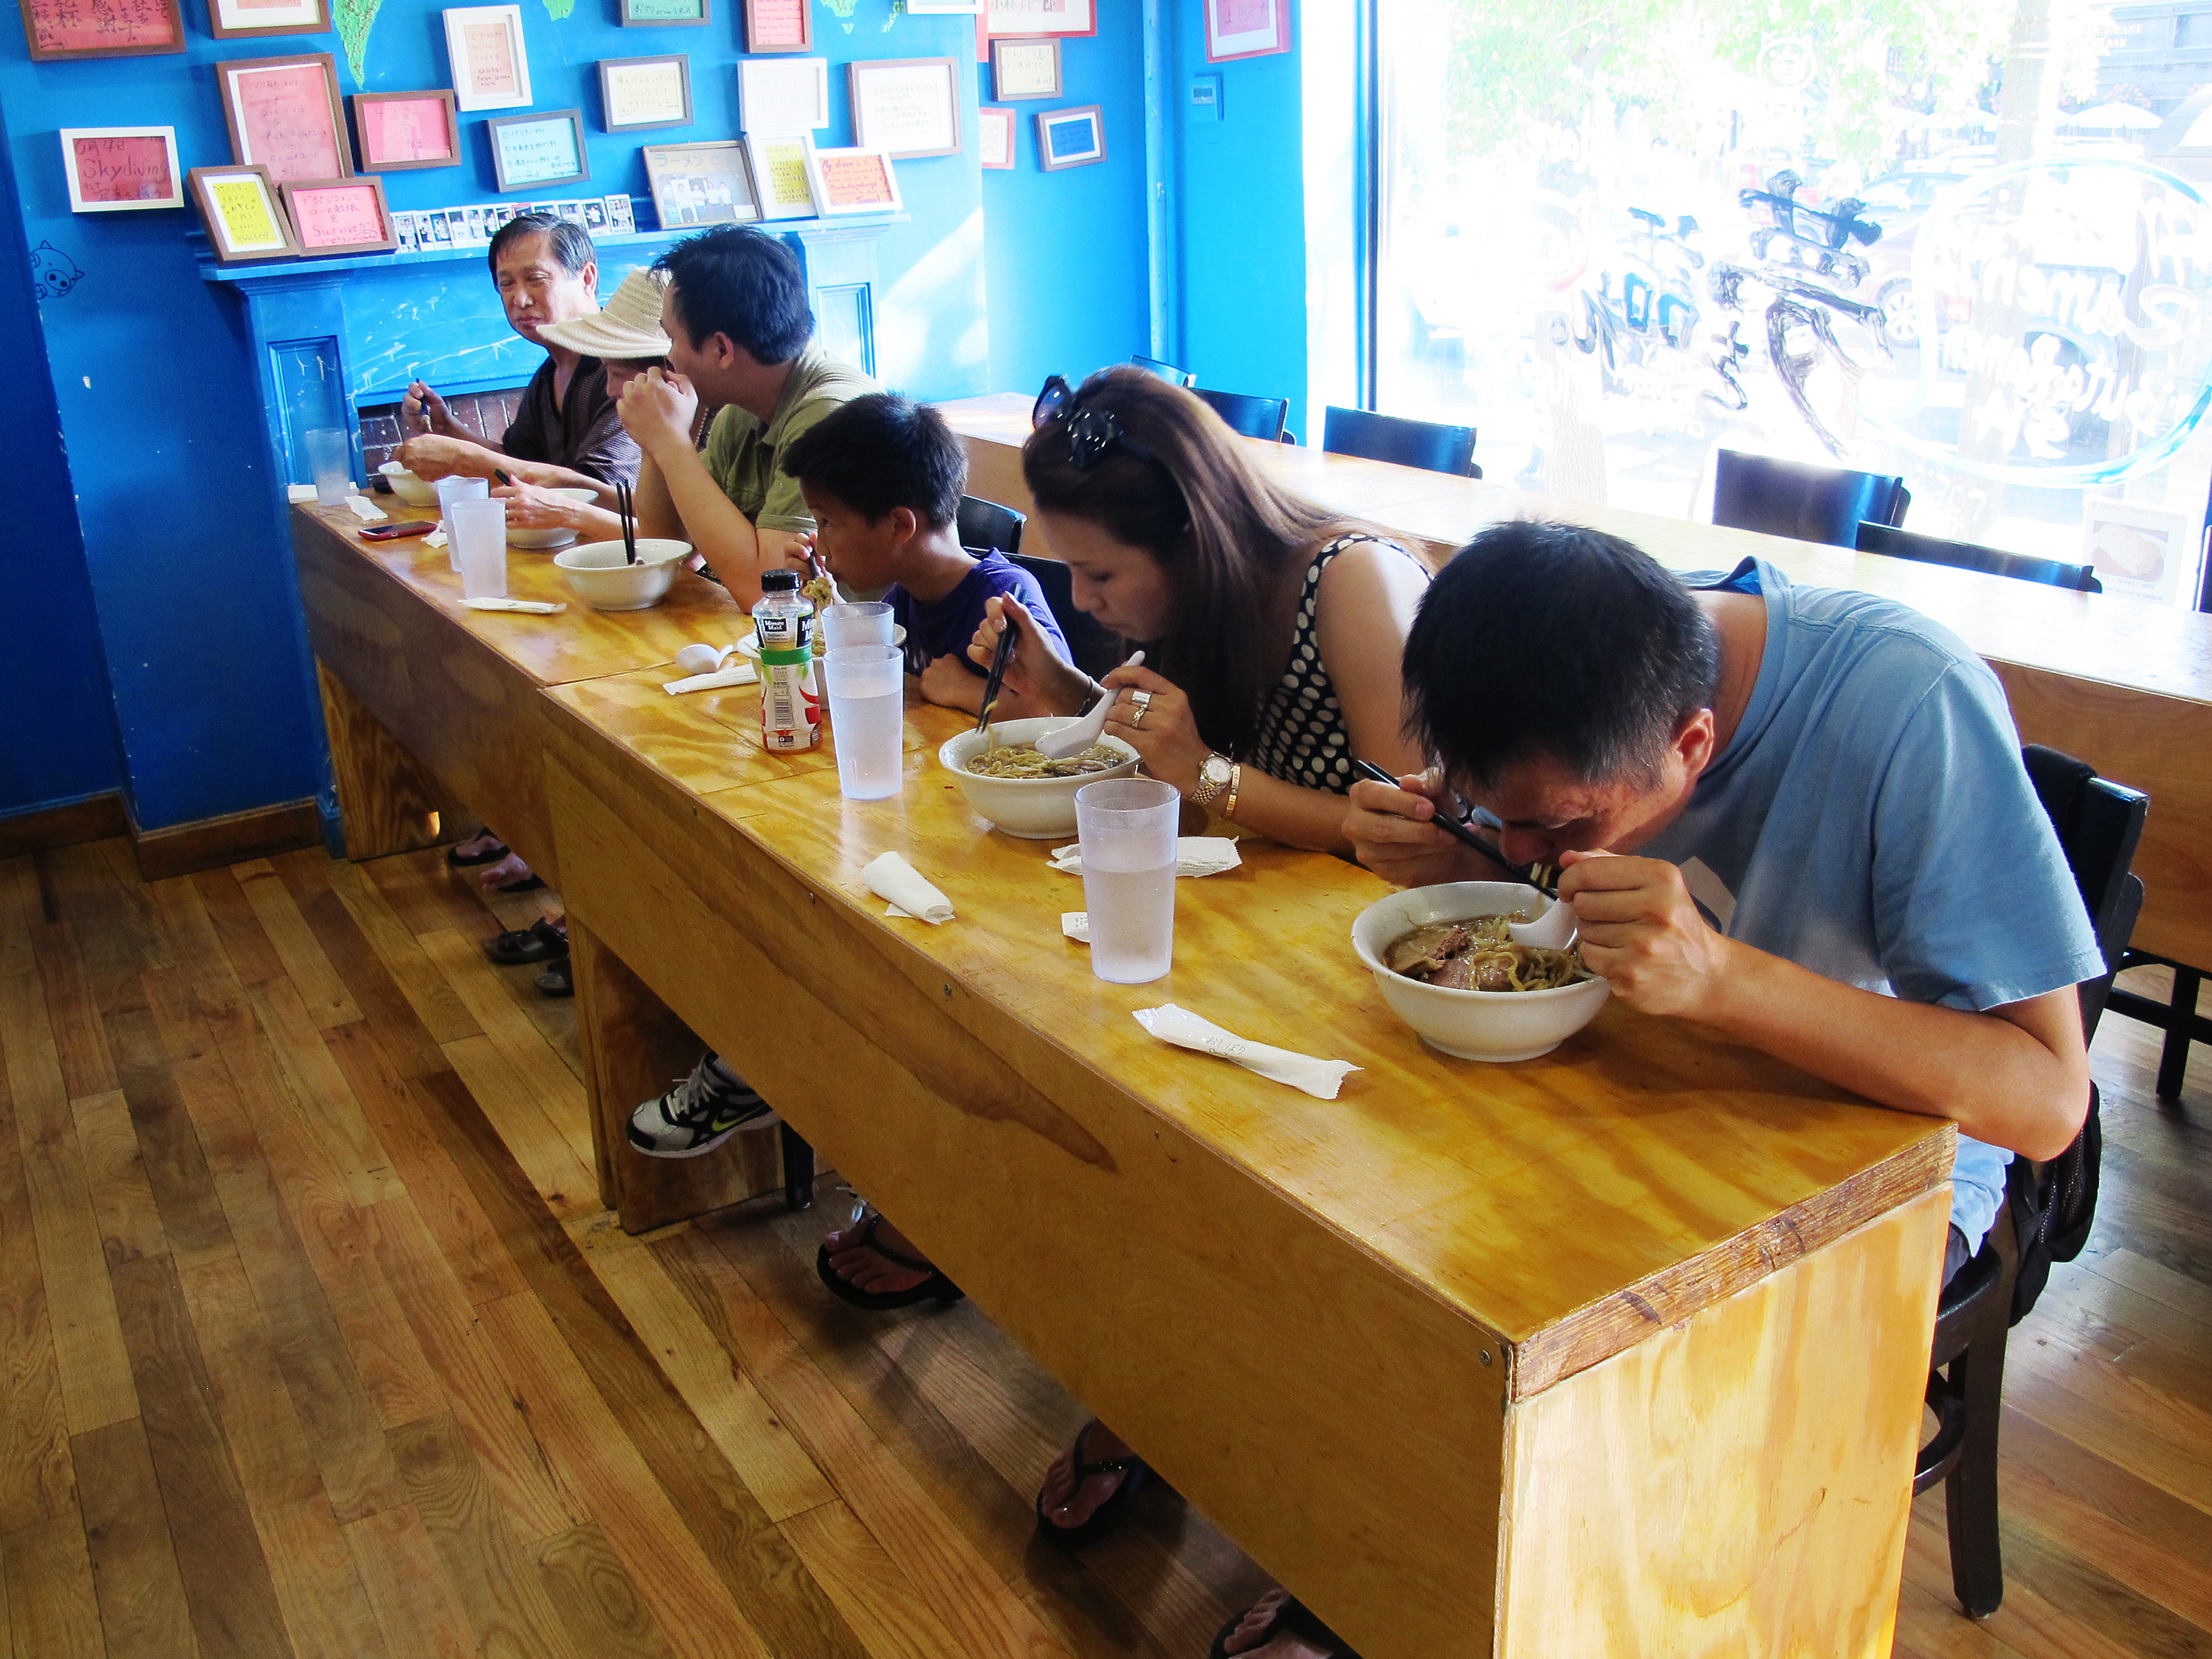 At this shop, finishing the huge, rich bowls of ramen requires fortitude and deep concentration. Photo: Andrea Shea for WBUR